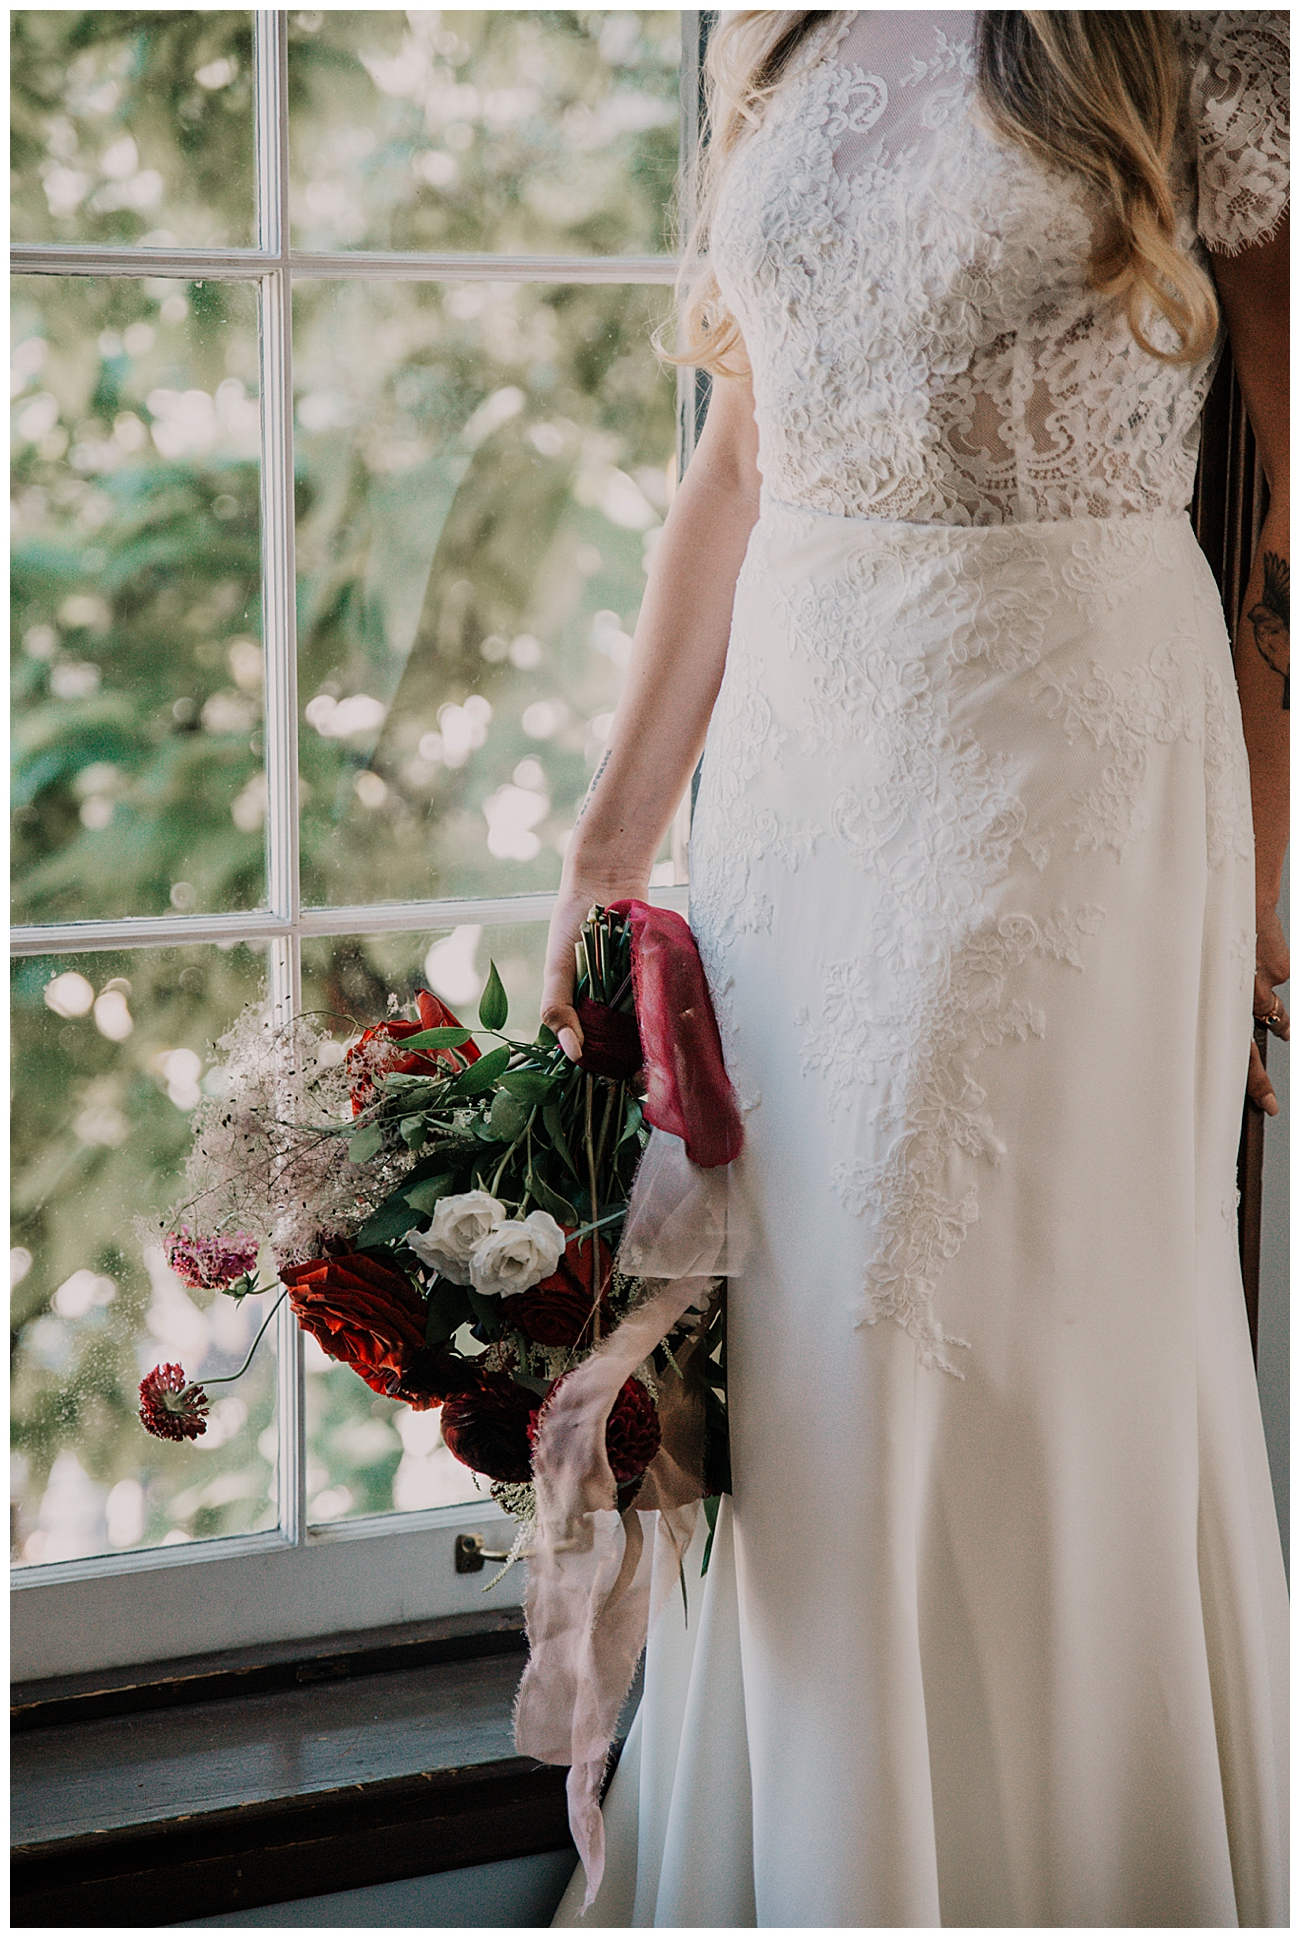 Lace Wedding Dress with Red Bouquet